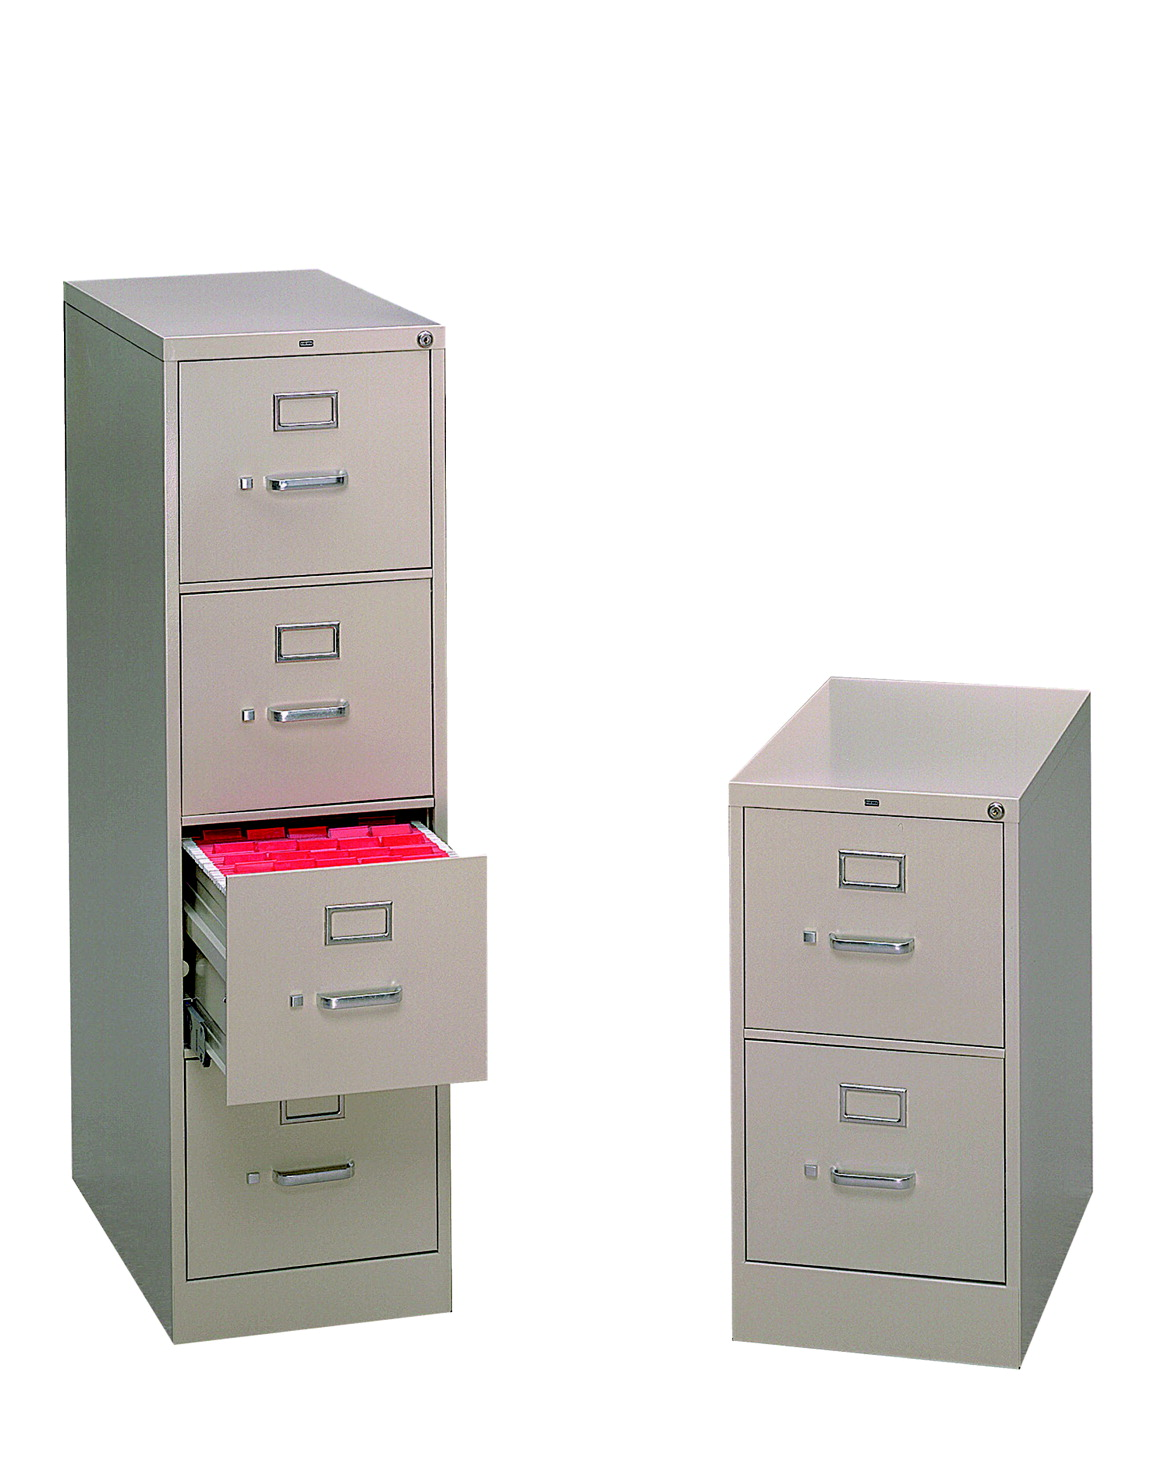 drawer white two size walnut small filing lock ikea file home for wood cabinet me caddy lateral large with storage hon cabinets near colored legal of